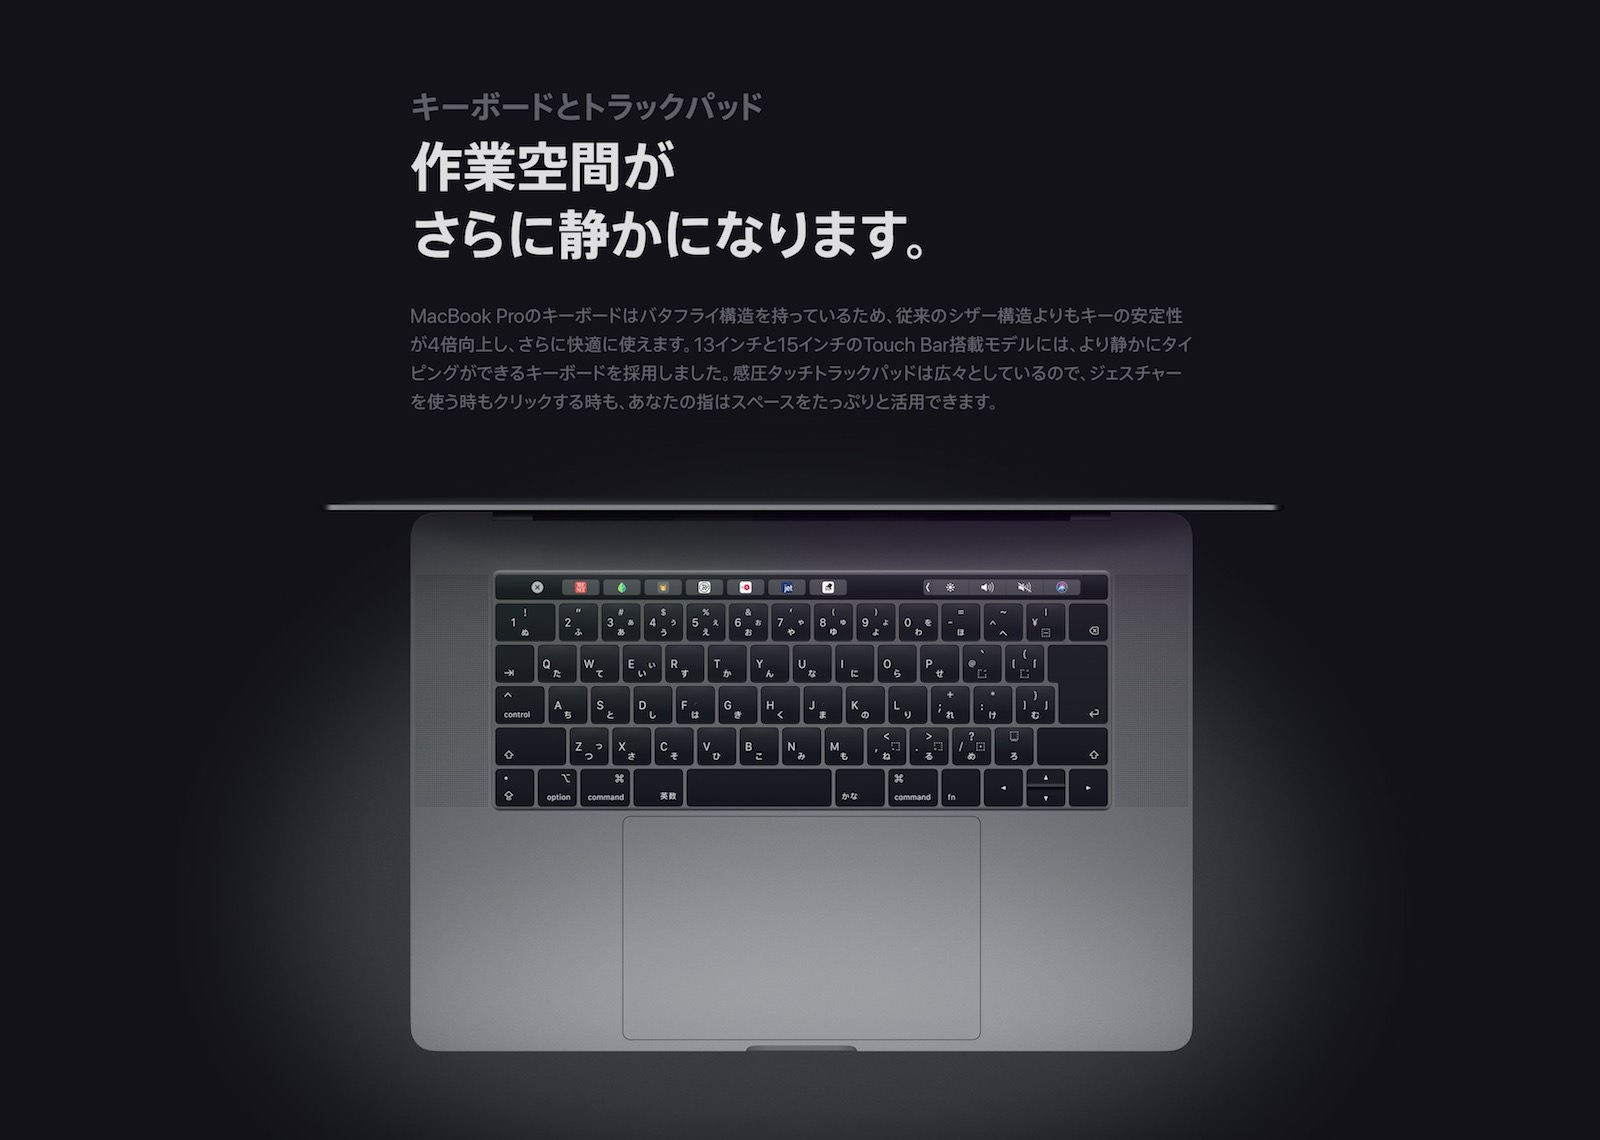 MacBook Pro 2018 Keyboard Official Page